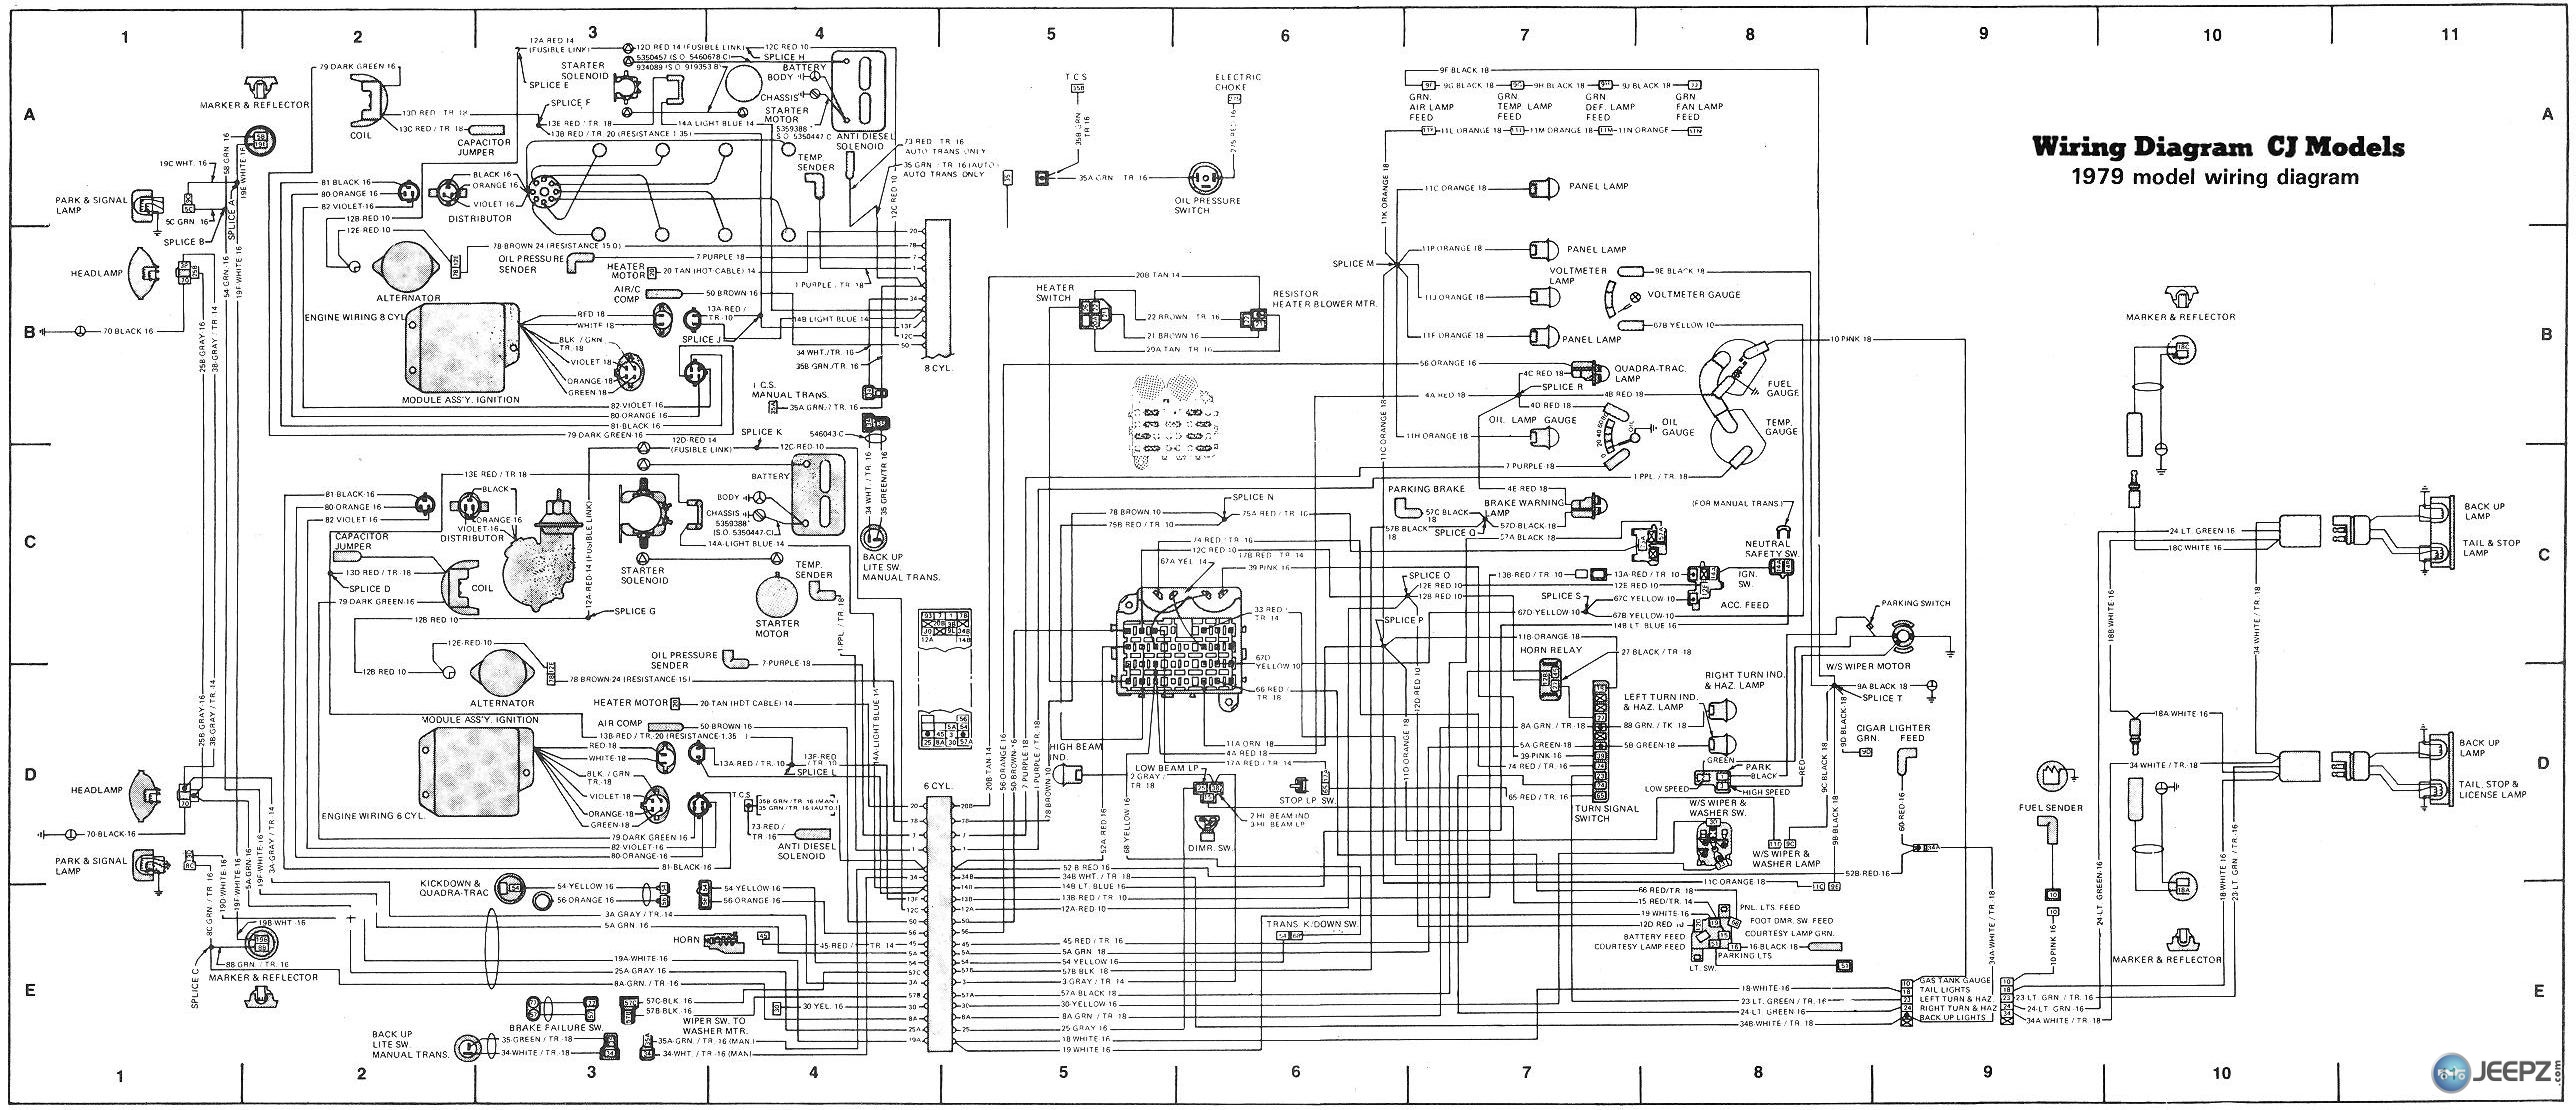 Wondrous Wiring Diagram For Cj8 Blog Diagram Schema Wiring Digital Resources Llinedefiancerspsorg